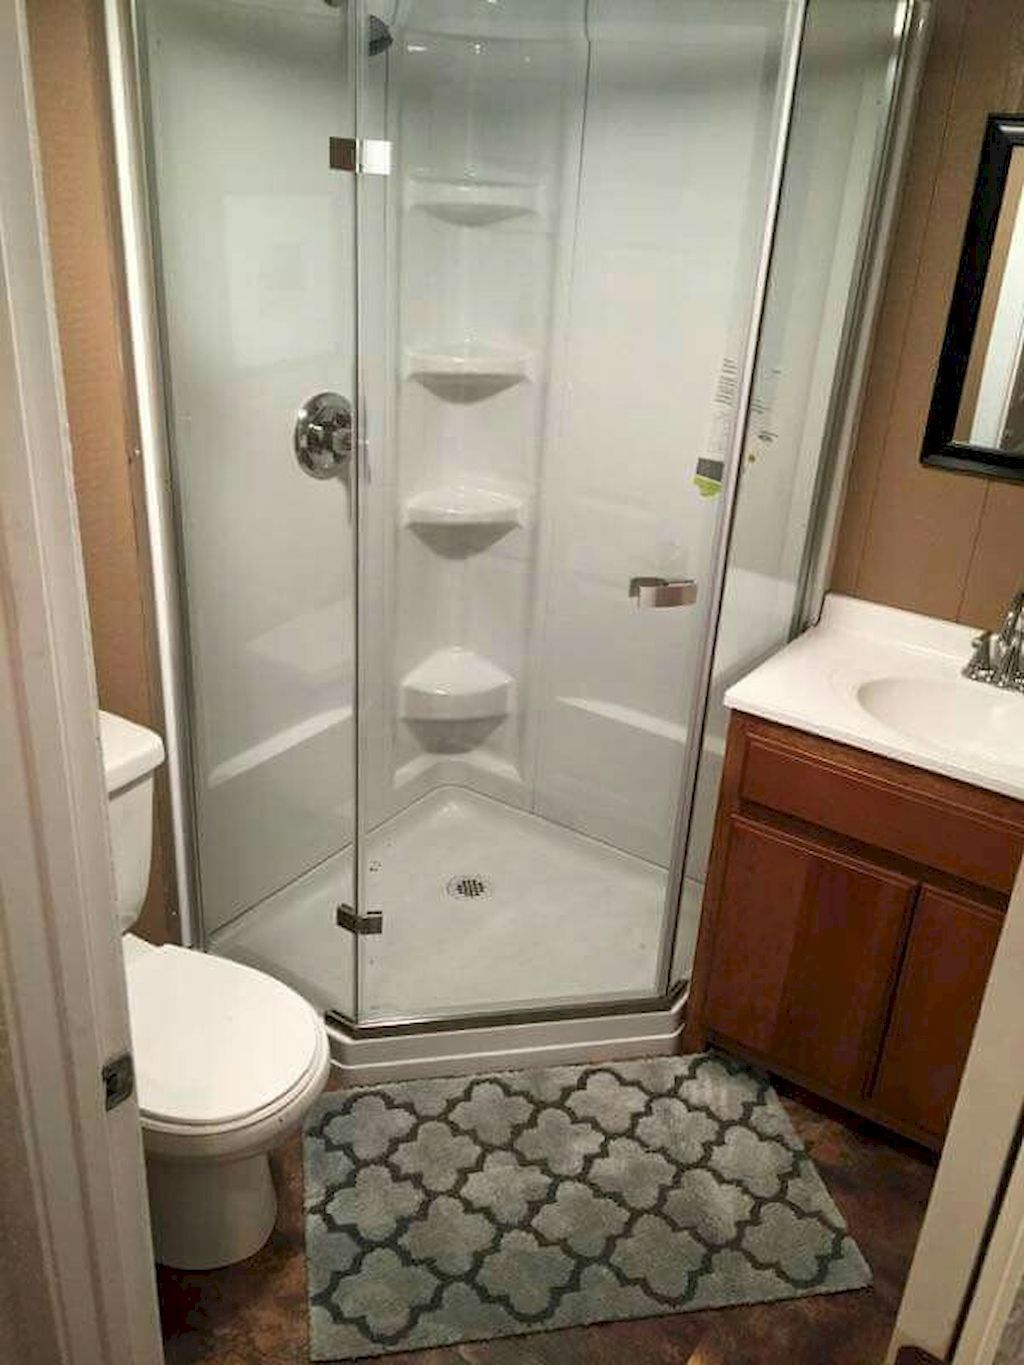 Small Bathroom Designs On A Budget 75 Simple Tiny Space Bathroom Ideas On A Budget  Tiny Spaces